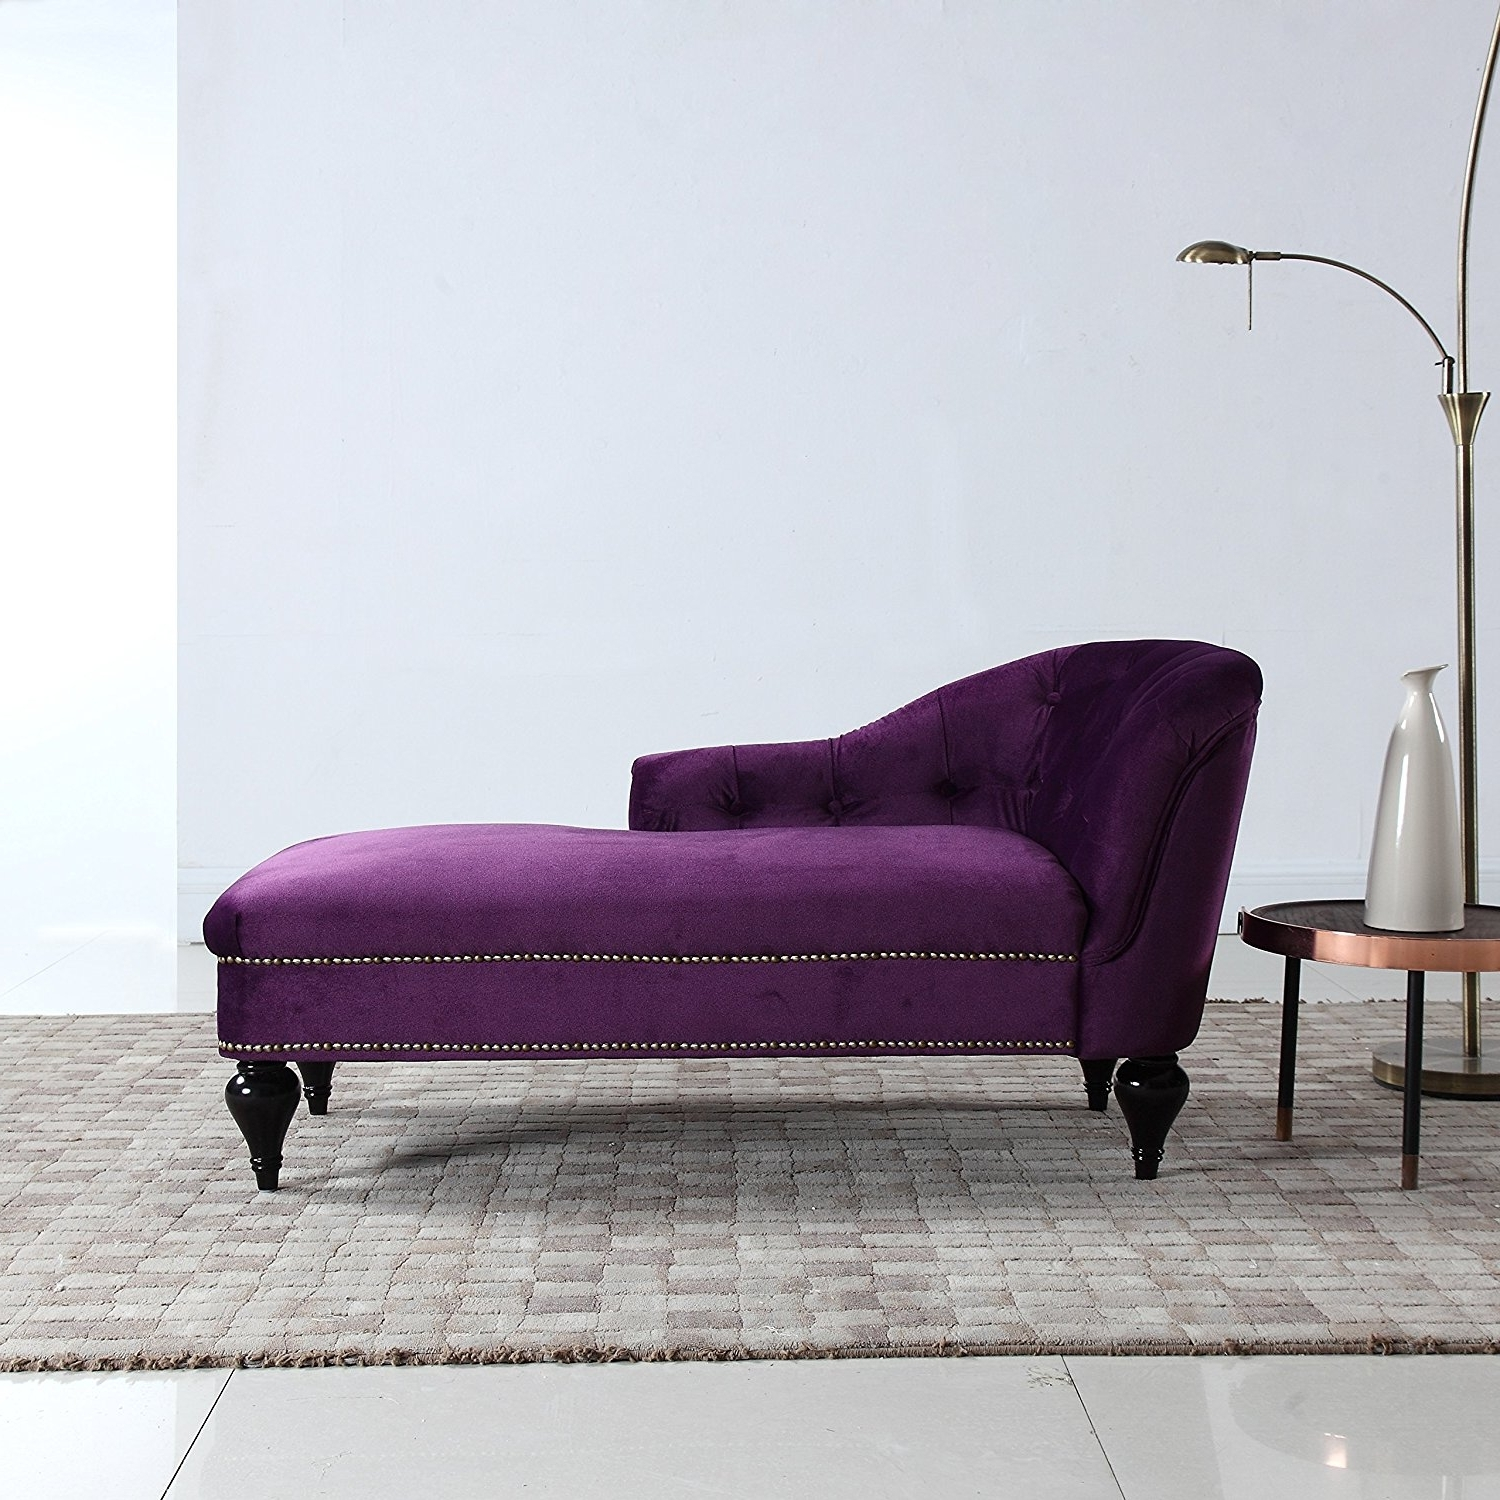 Most Popular Amazon: Modern And Elegant Kid's Velvet Chaise Lounge For Throughout Velvet Chaise Lounges (View 4 of 15)